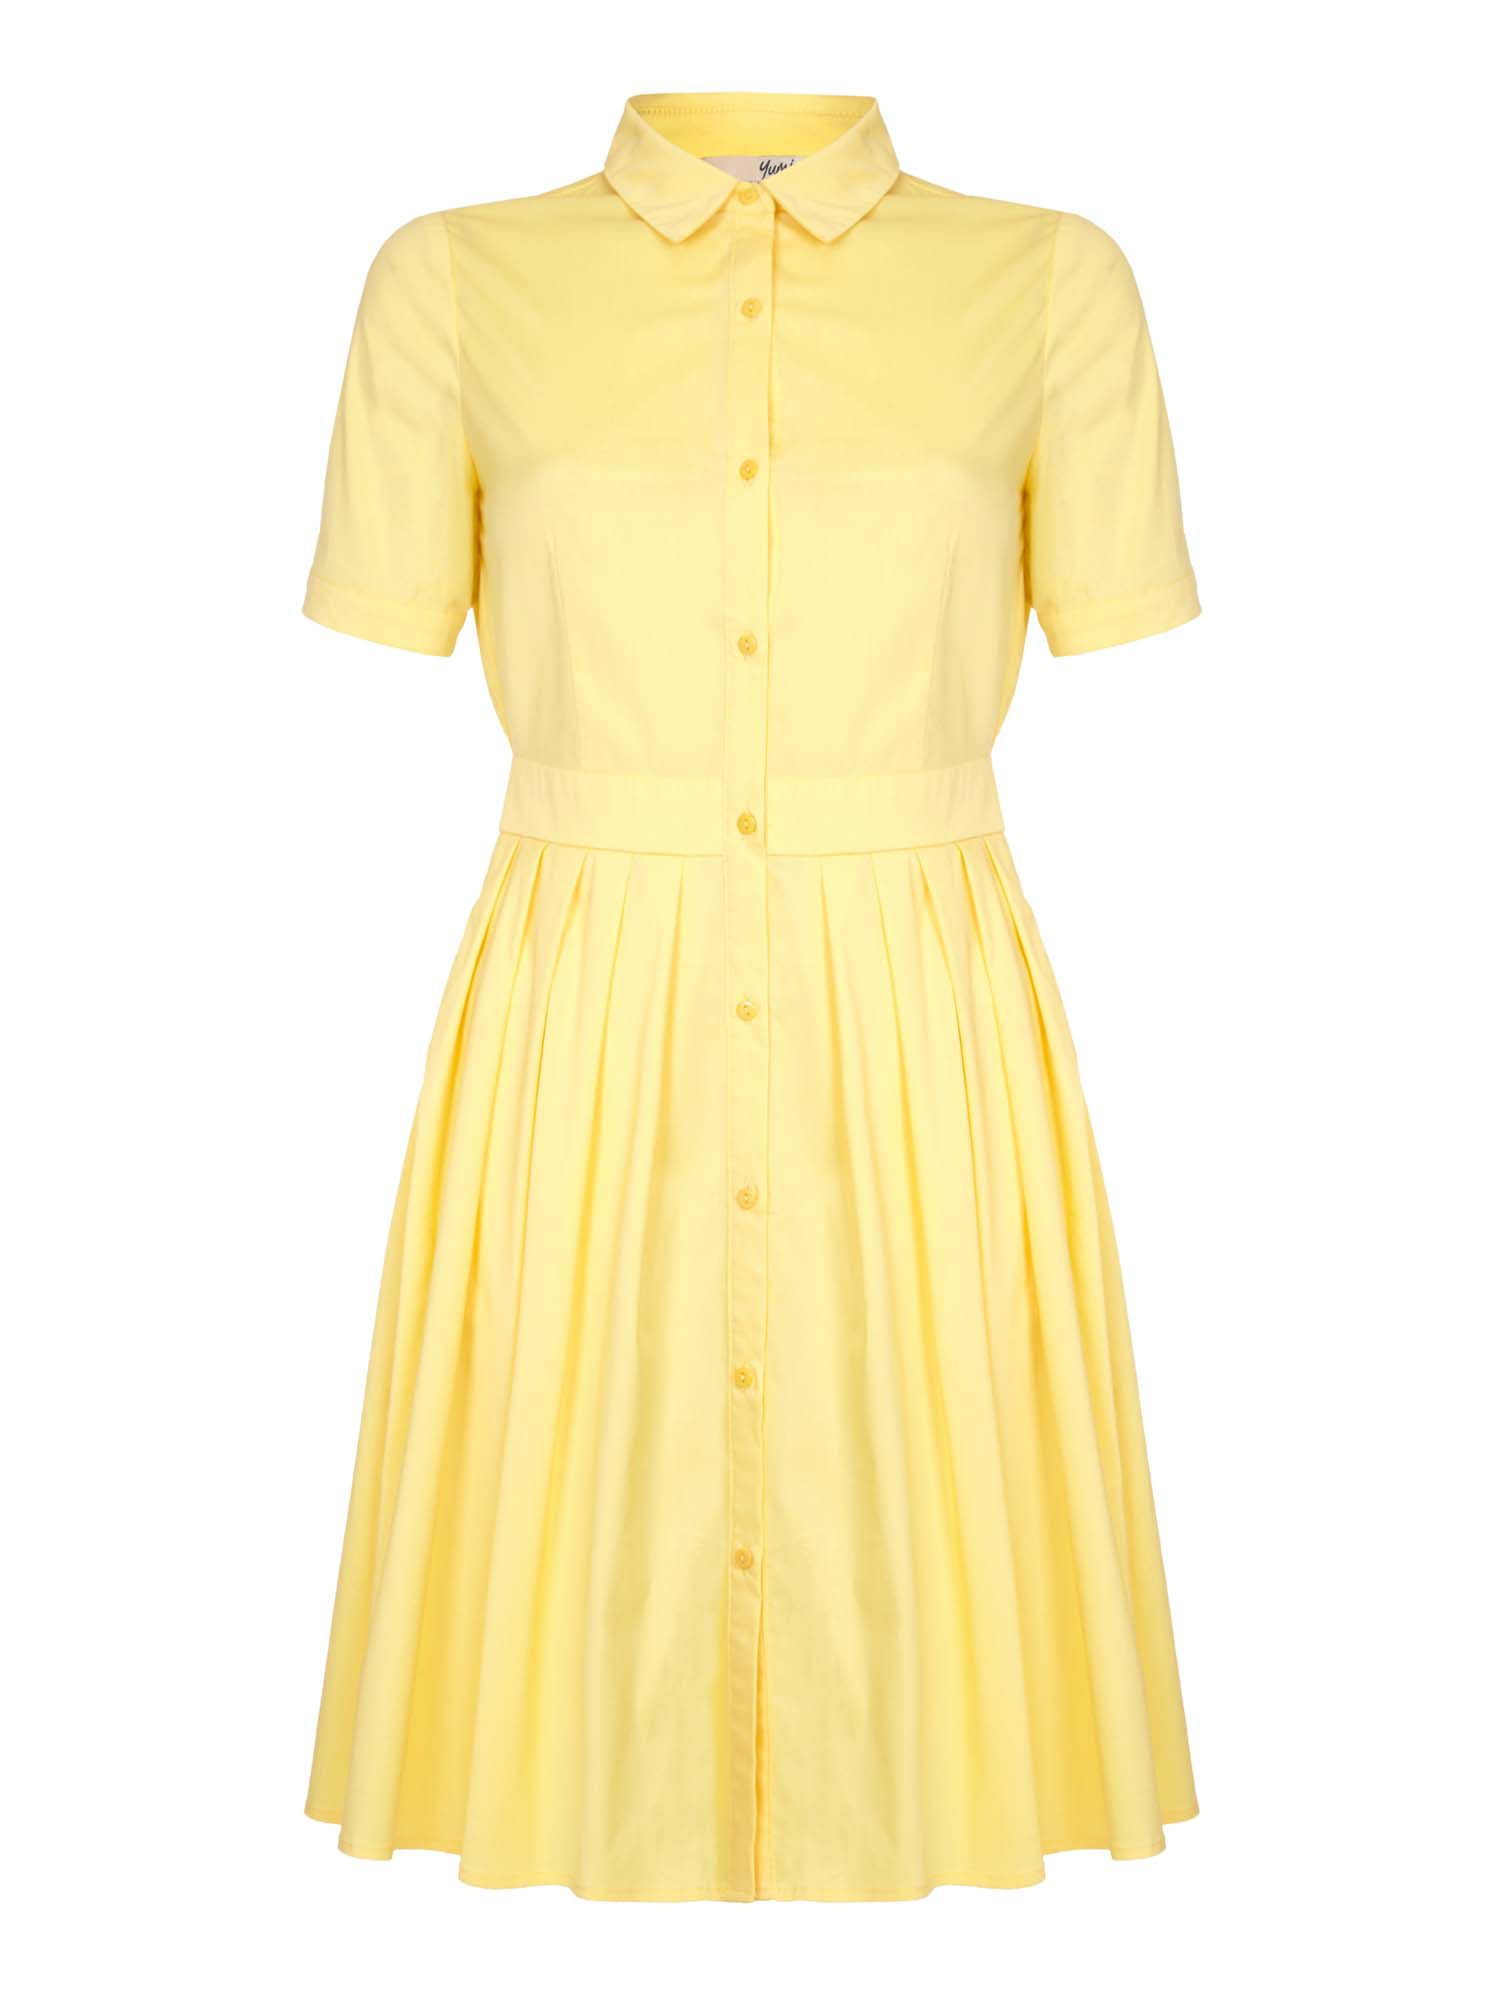 Yumi Yumi Pleat Short Sleeve Shirt Dress, Yellow